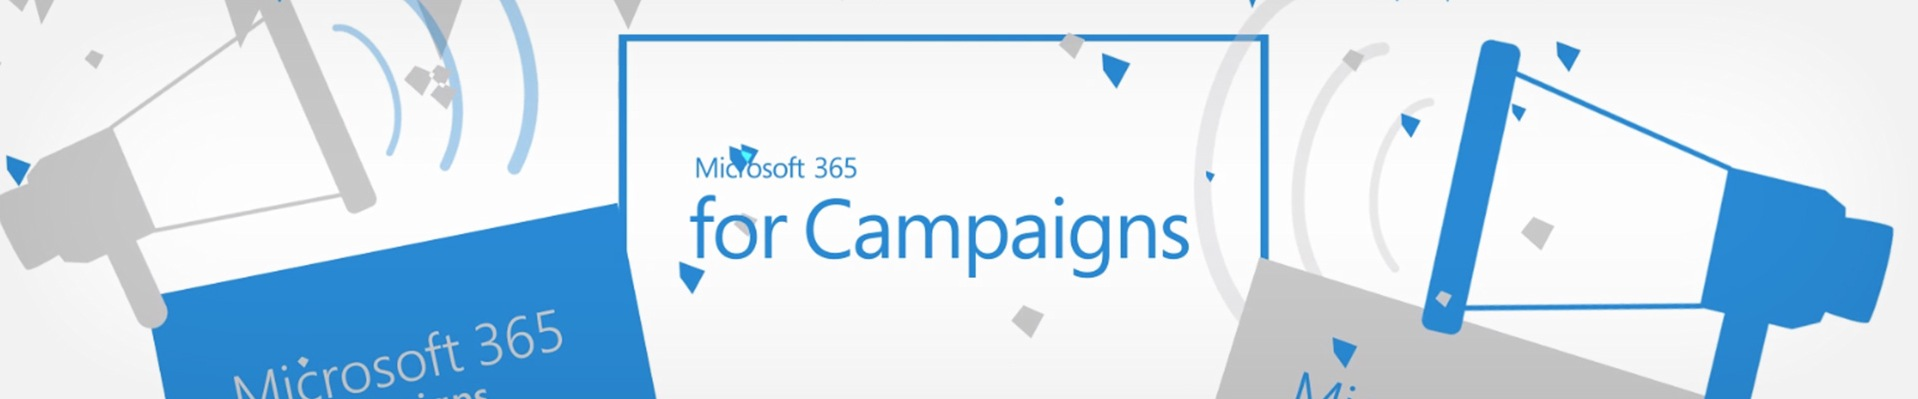 Illustration of megaphones and confetti surrounding a rectangle that contains the text Microsoft 365 for Campaigns